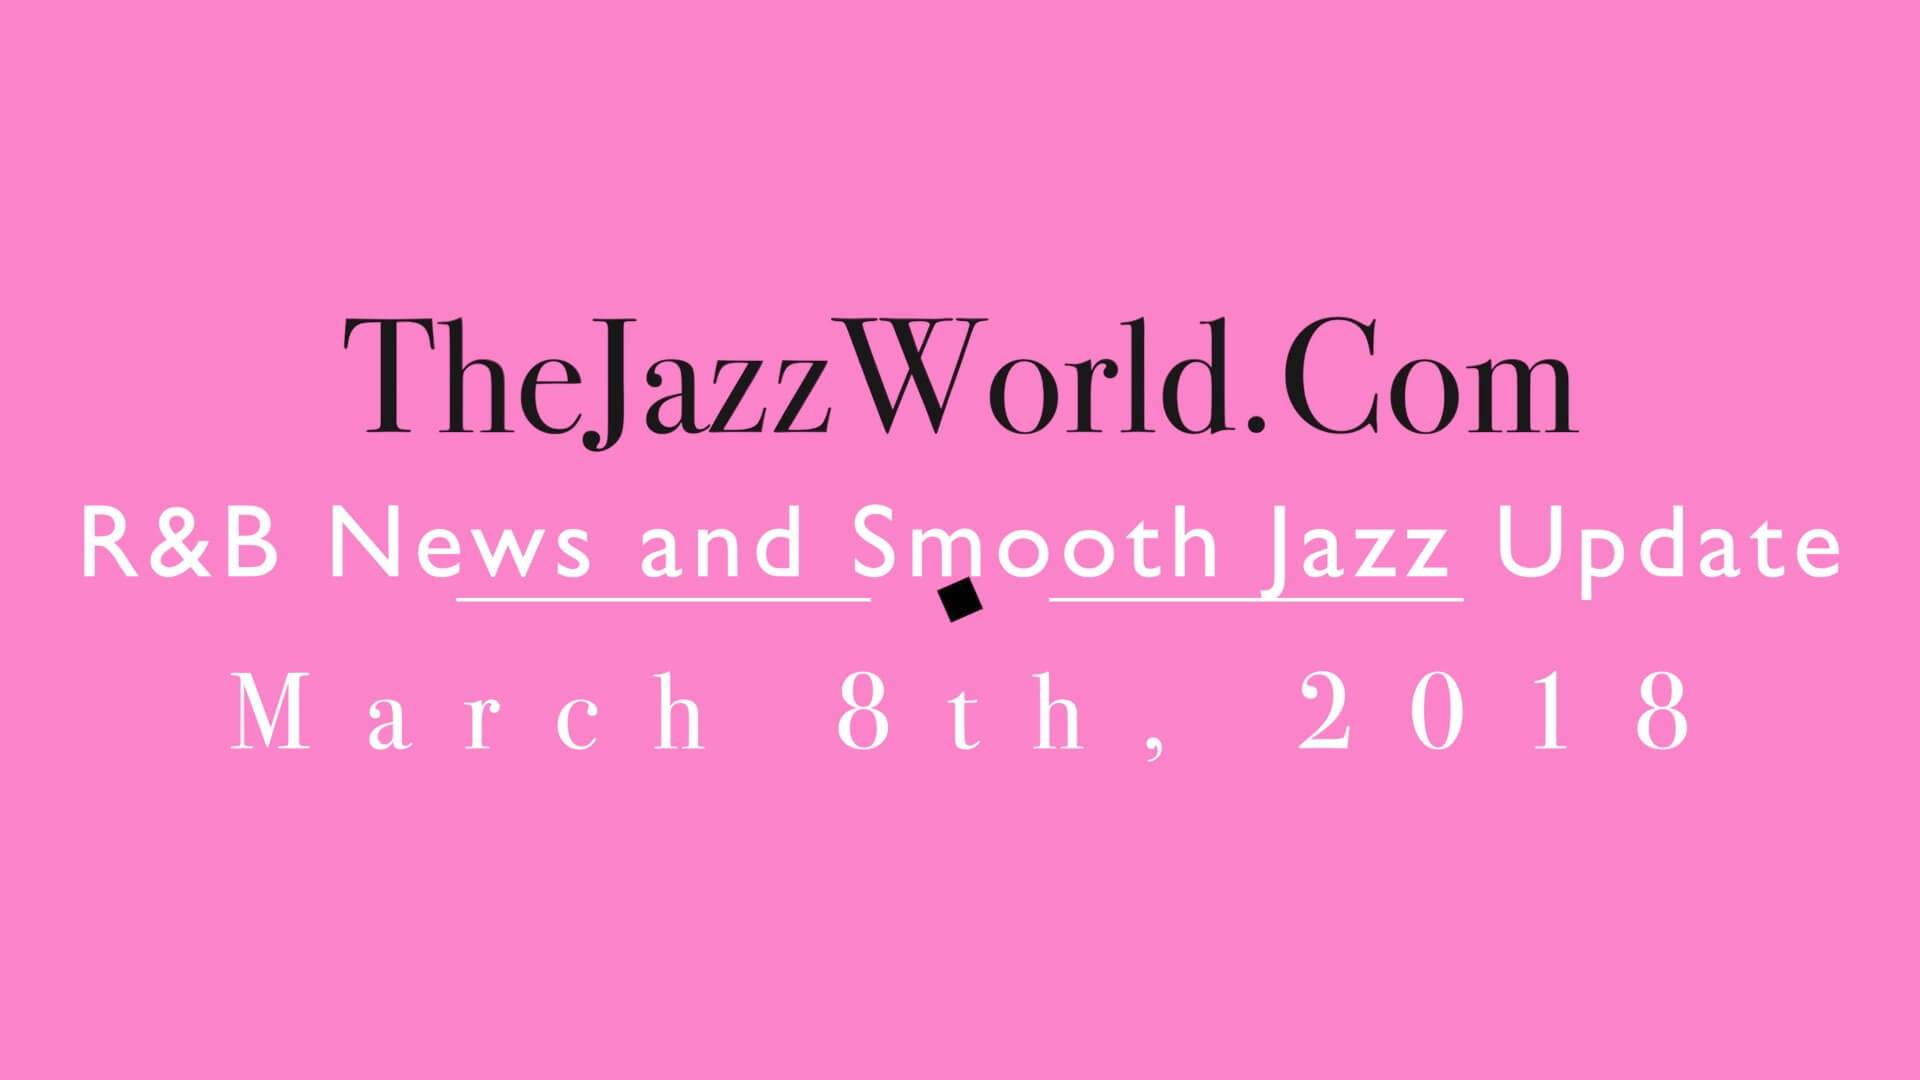 Latest R&B News and Smooth Jazz Update March 8th